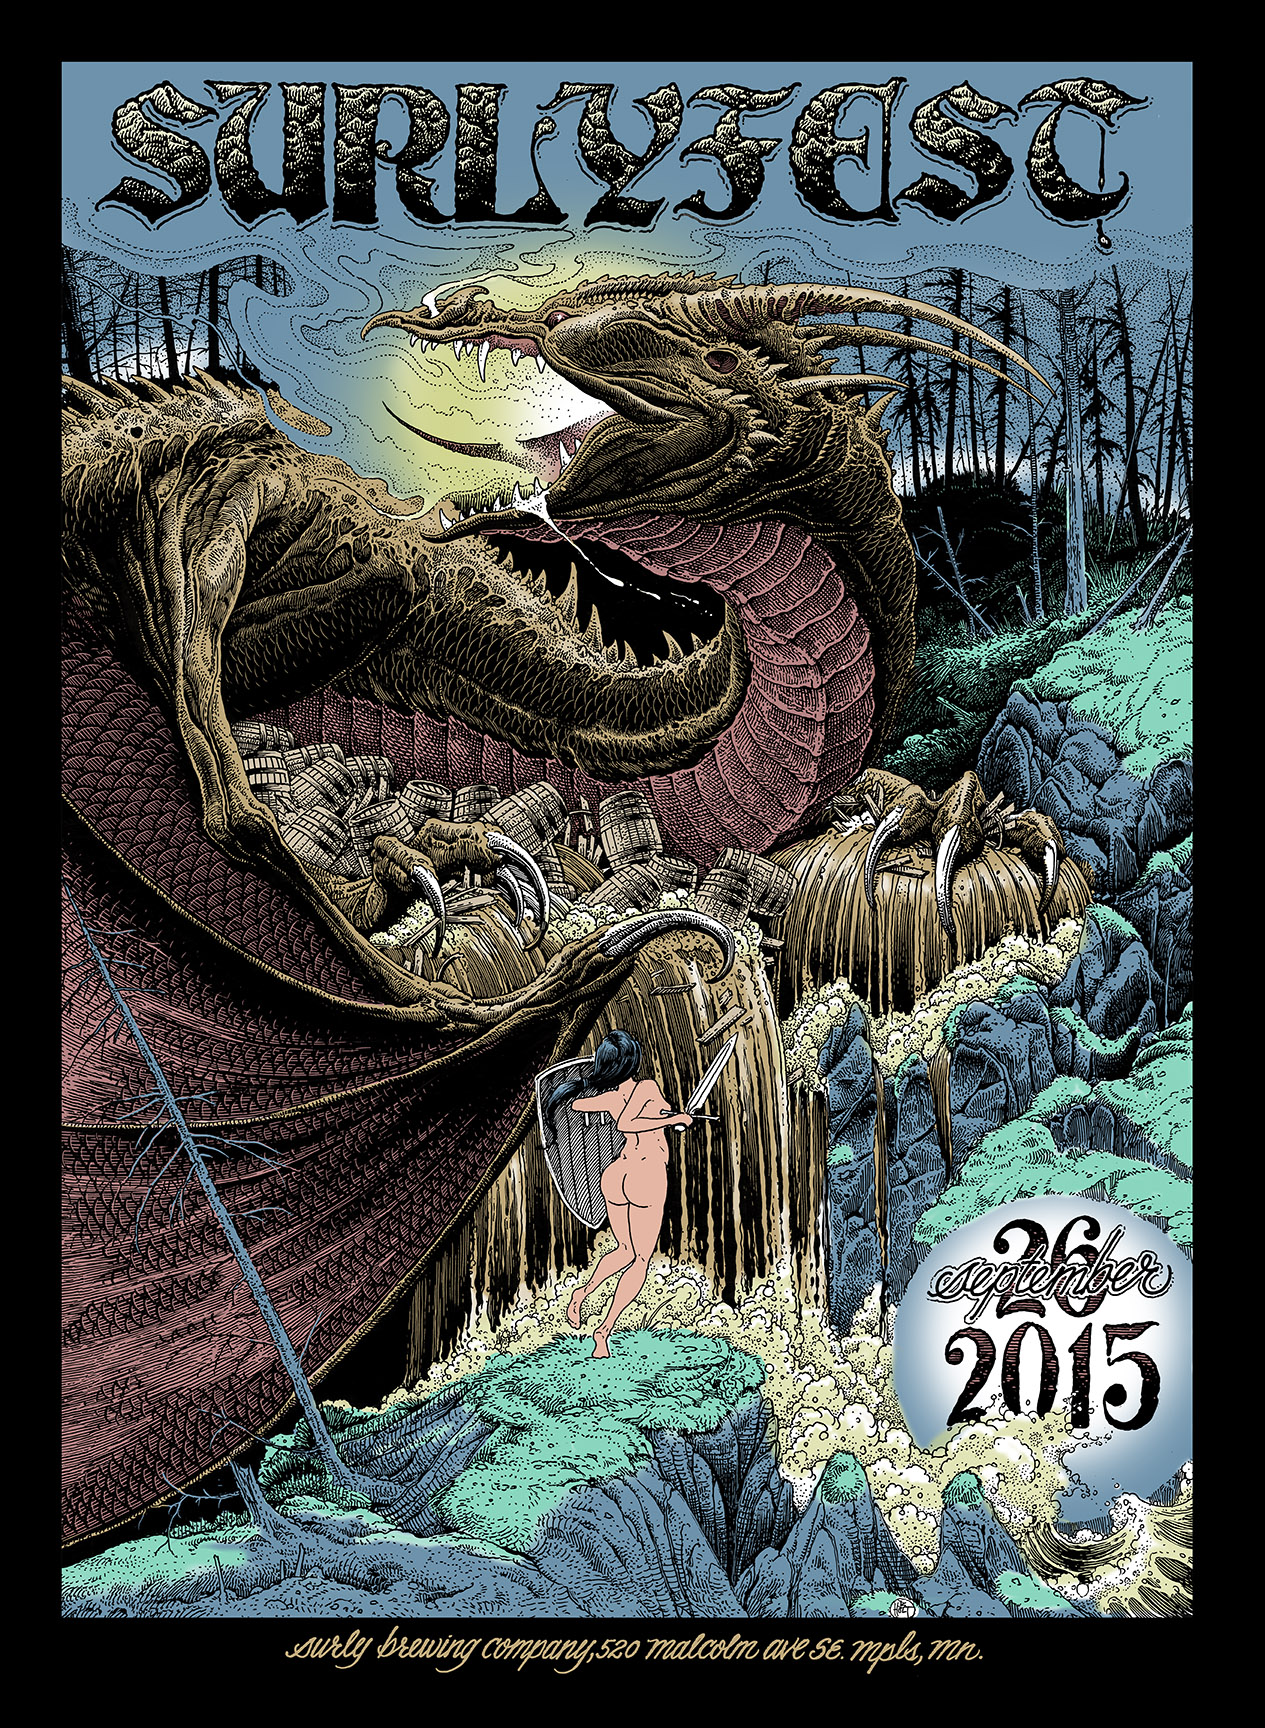 surlyfest-2015-final-art-for-web-and-social-media